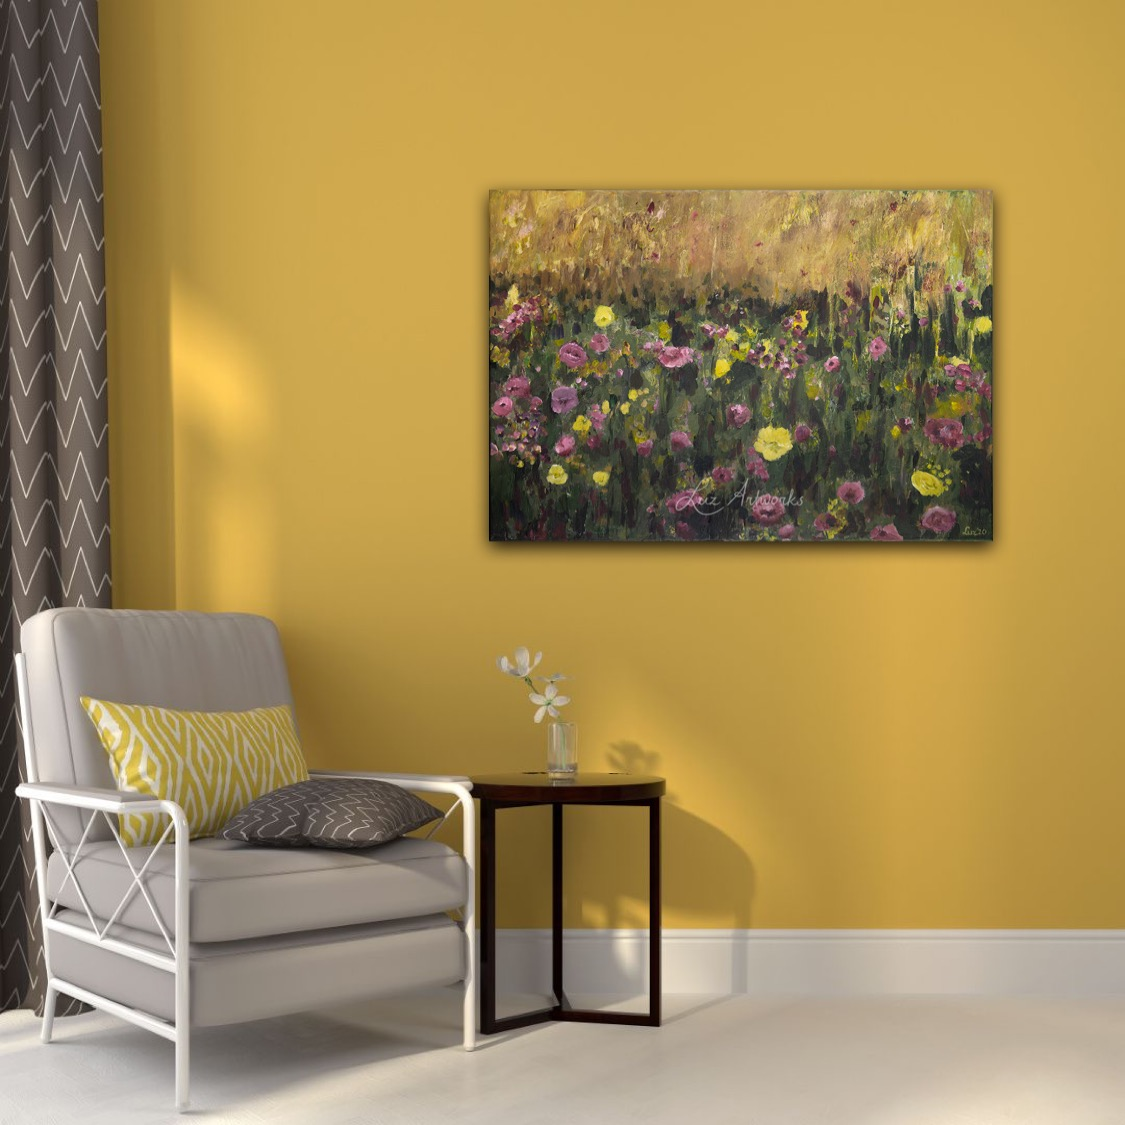 Pink and purple flower field by Luz Artworks Marloes Bloedjes - on the wall